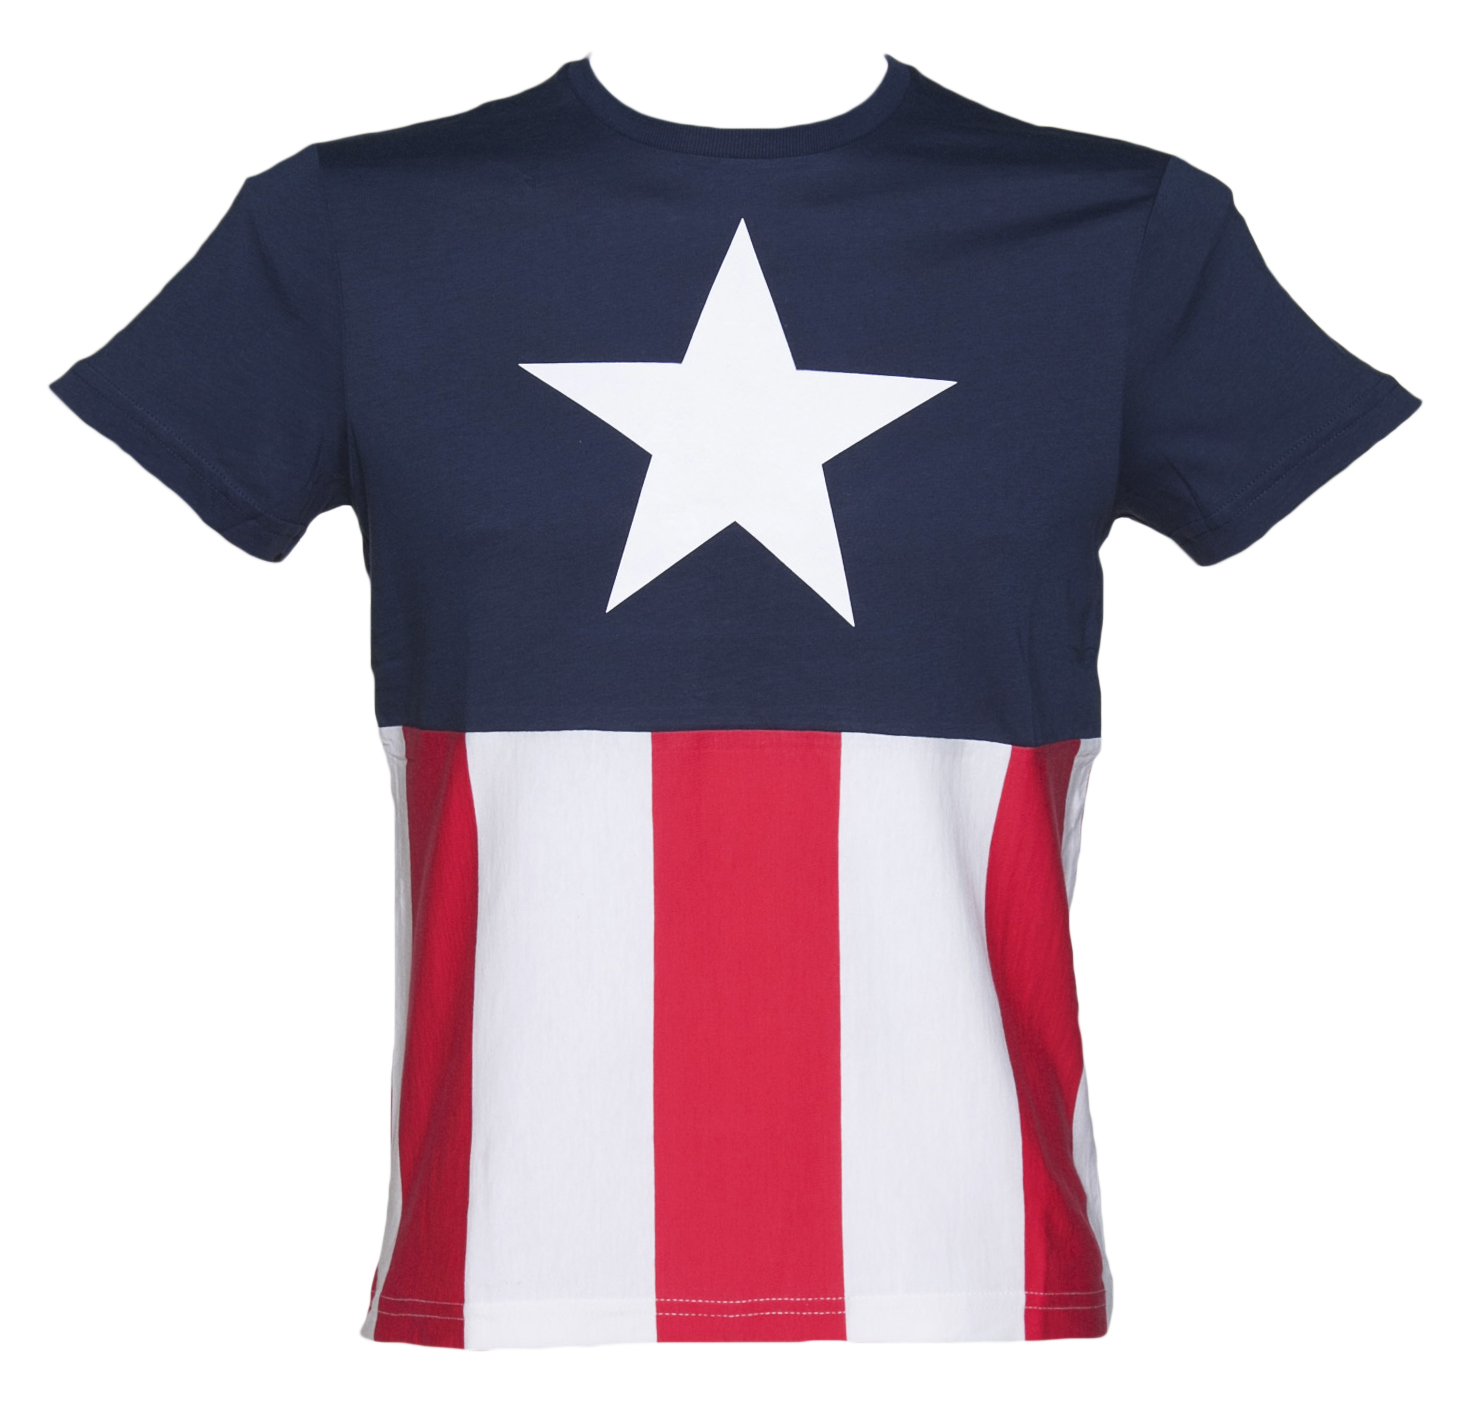 men 39 s captain america marvel costume t shirt. Black Bedroom Furniture Sets. Home Design Ideas